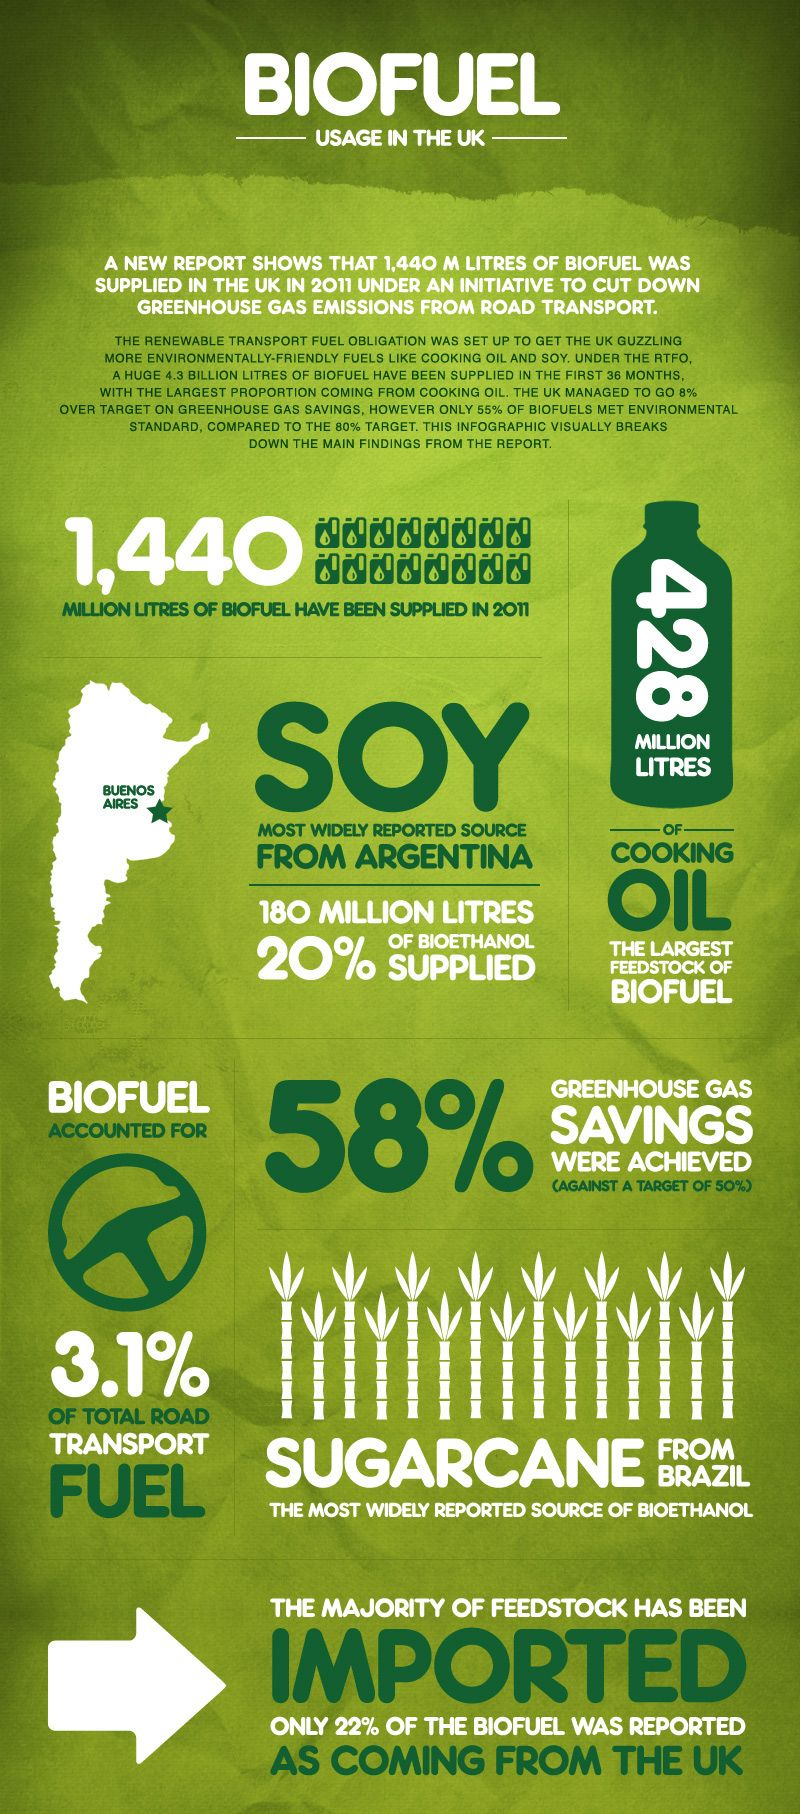 Biofuel Usage in the UK [Infographic] | CSR reference